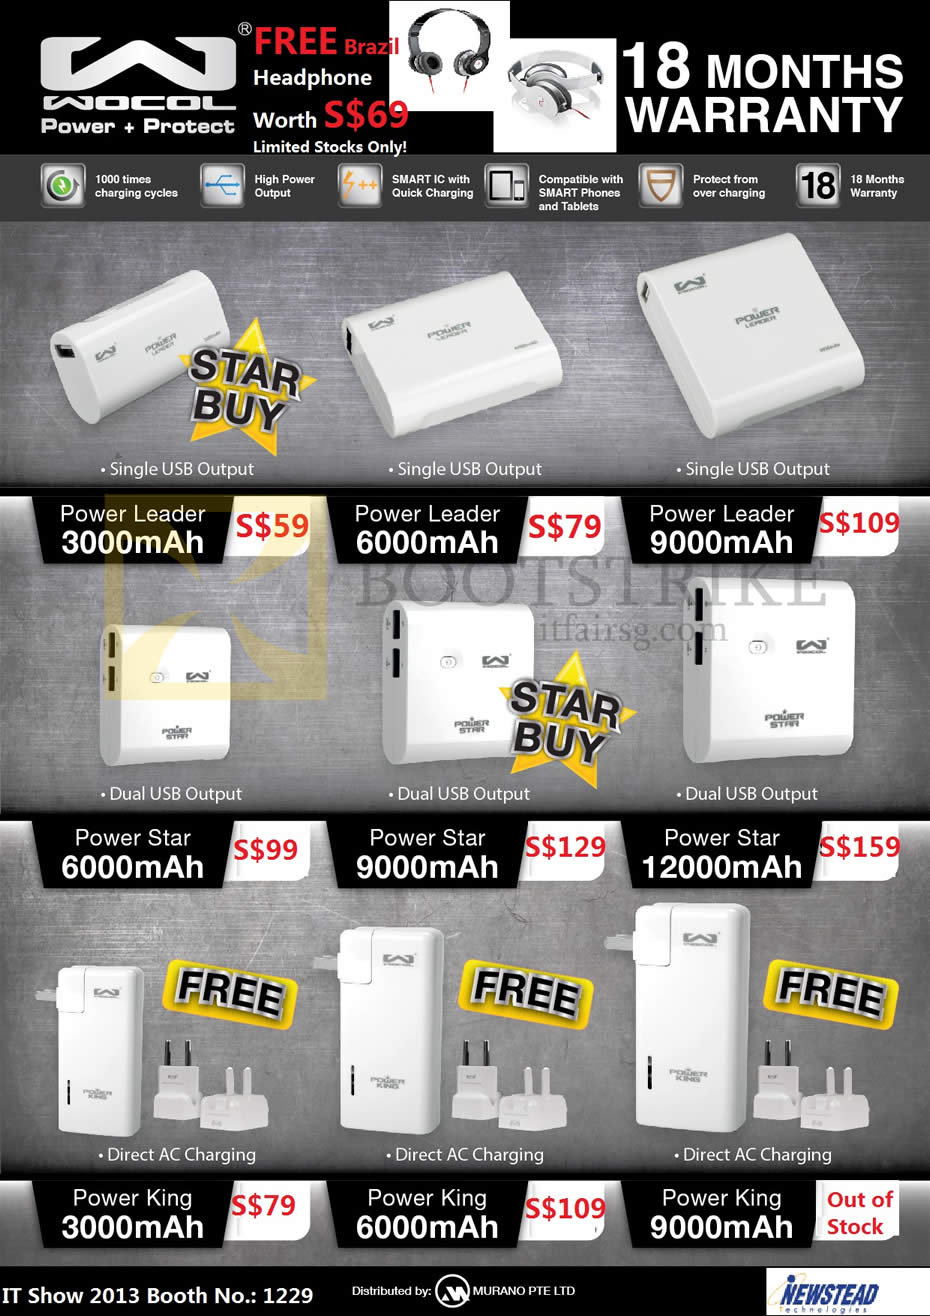 IT SHOW 2013 price list image brochure of Mojito Murano Wocol Portable Chargers Power Leader, Power Star, Power King